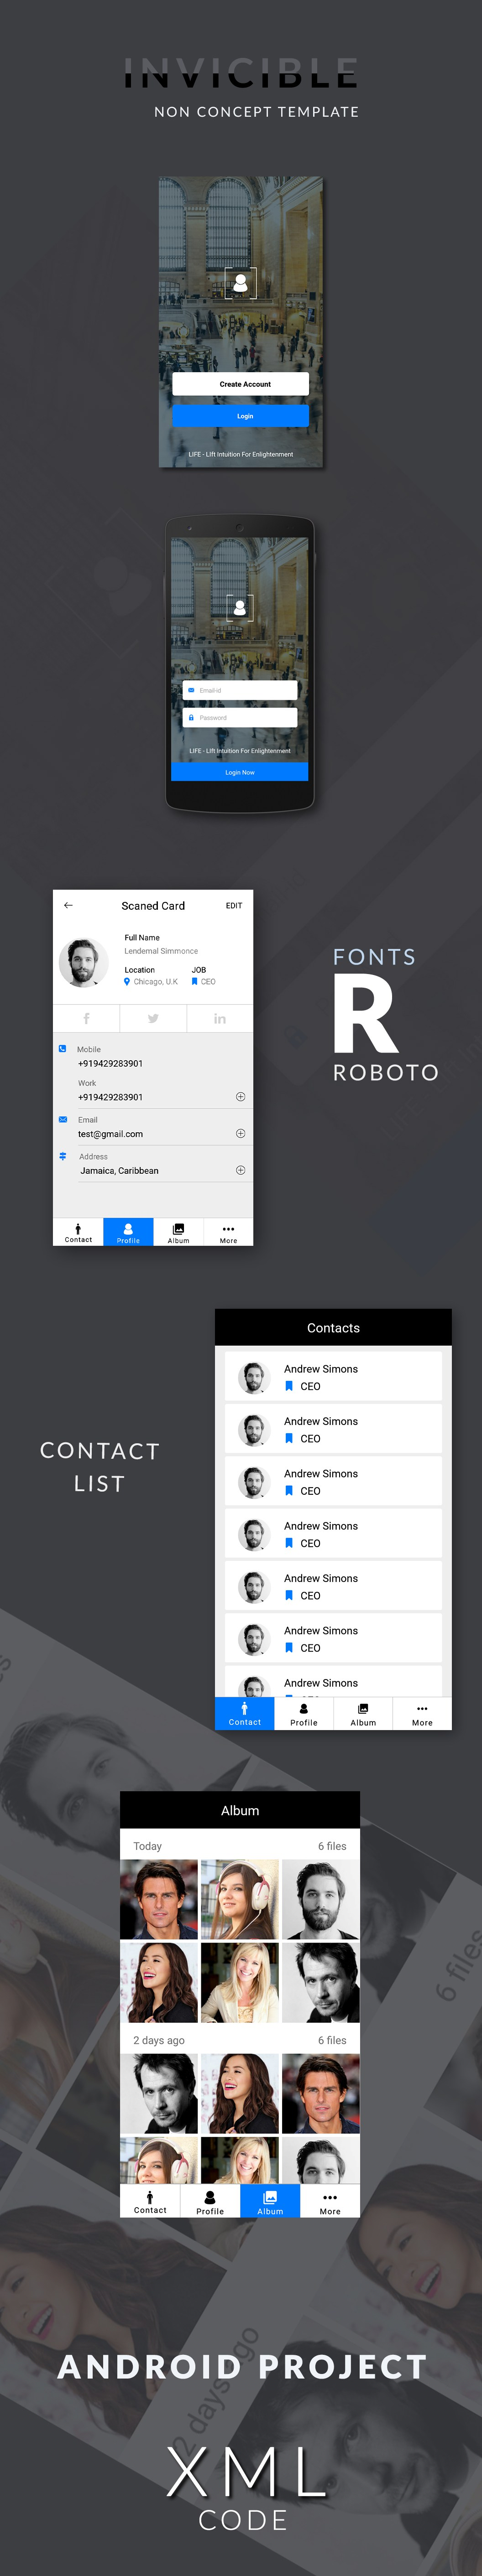 free download ui kit ready xml source code from www wsdesign